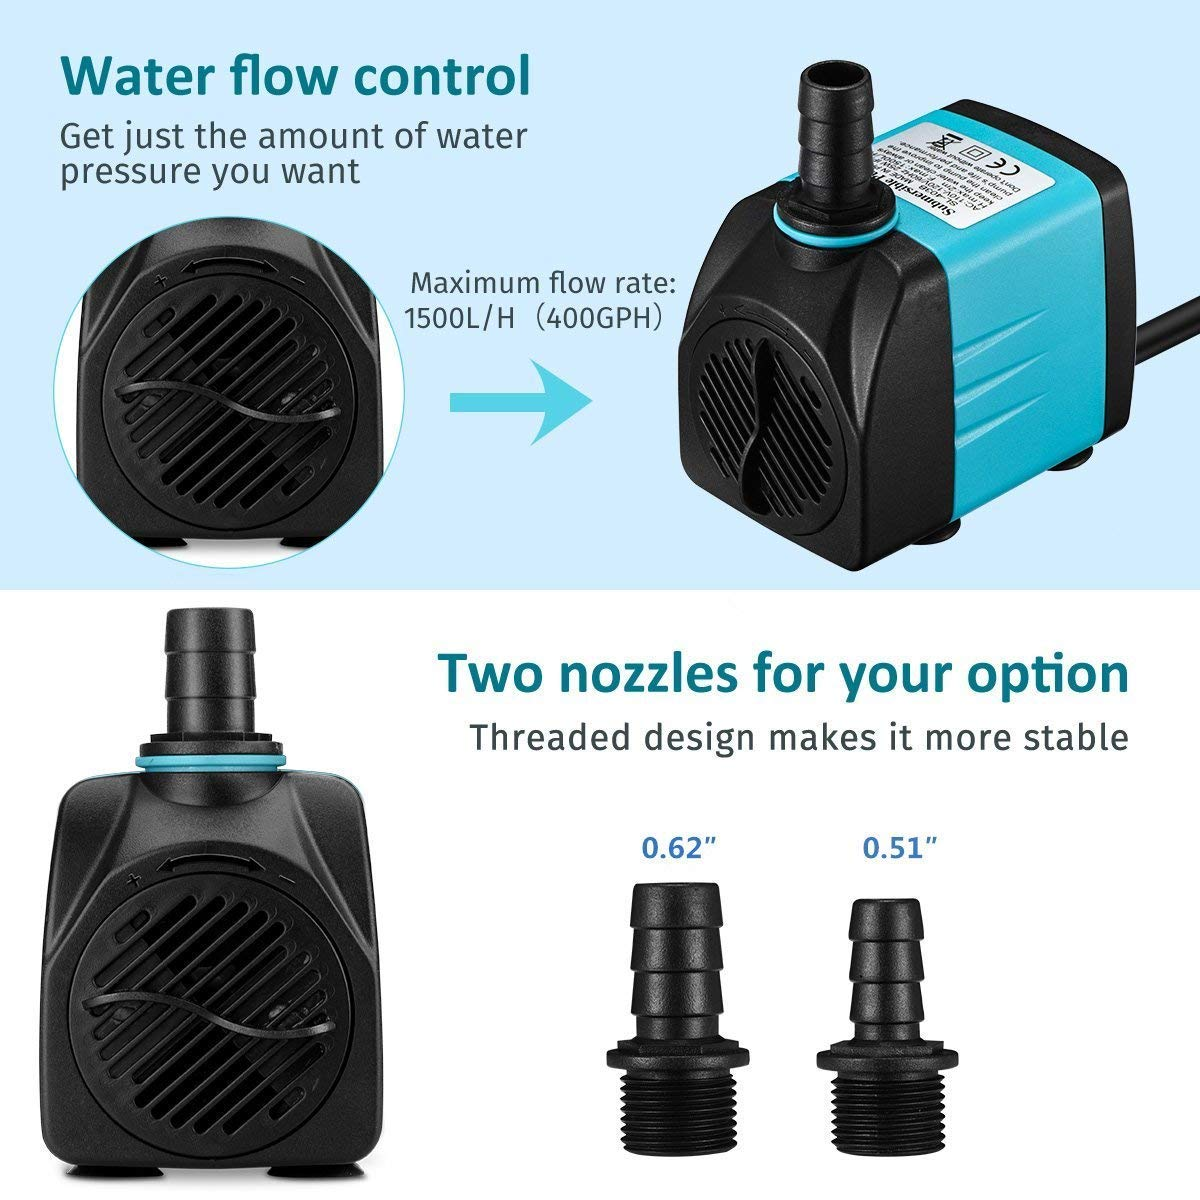 Upgraded 400GPH 1500L//H Ultra-Quiet Fountain Pu VICTSING Submersible Water Pump